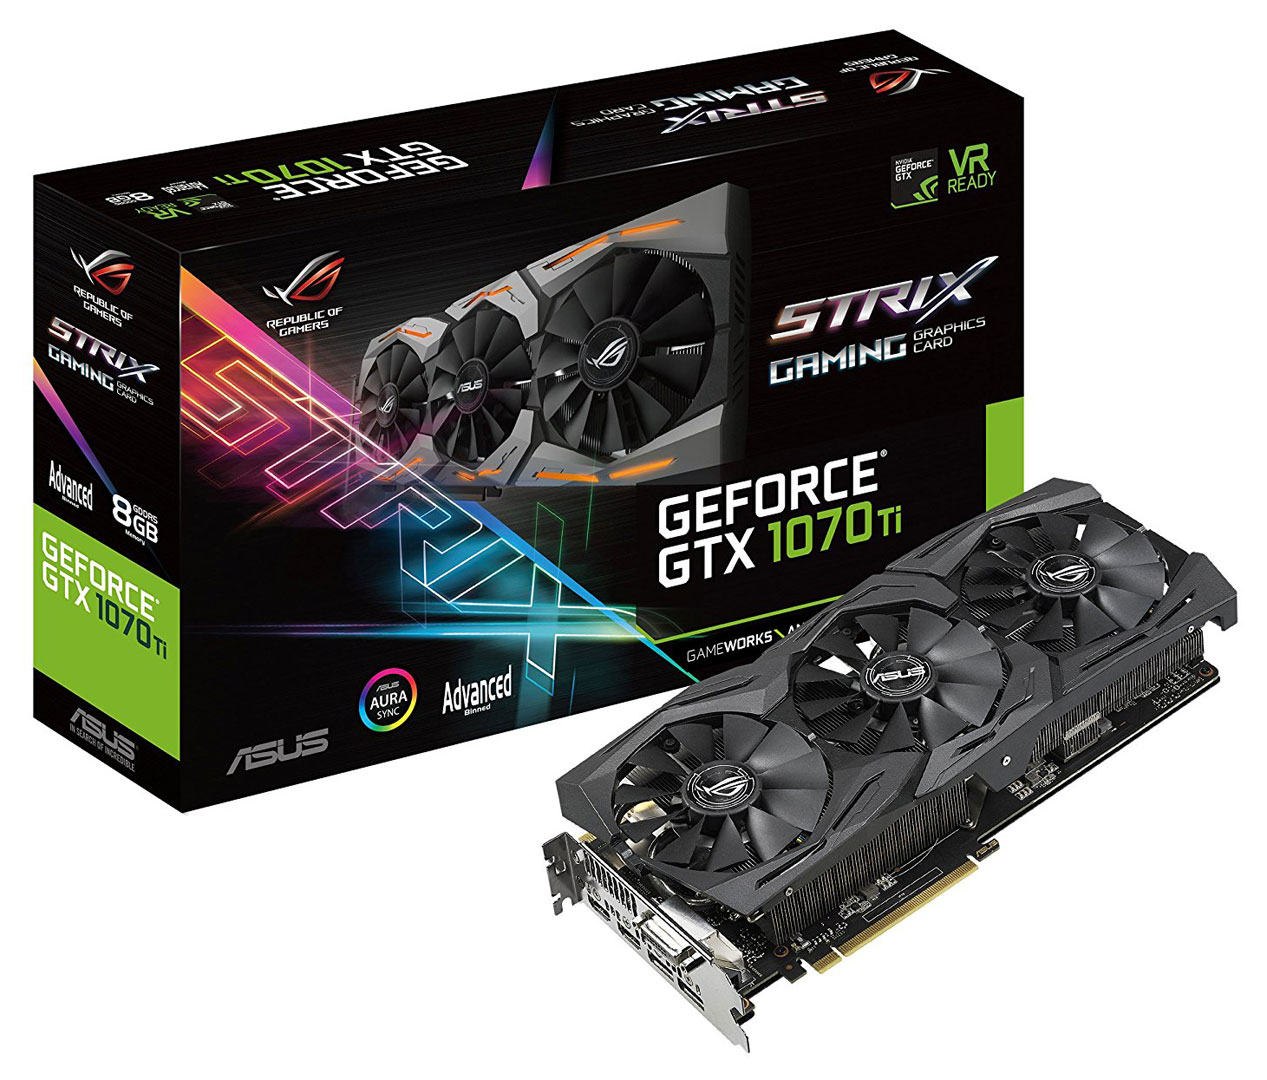 big_1070ti-battle_18.jpg